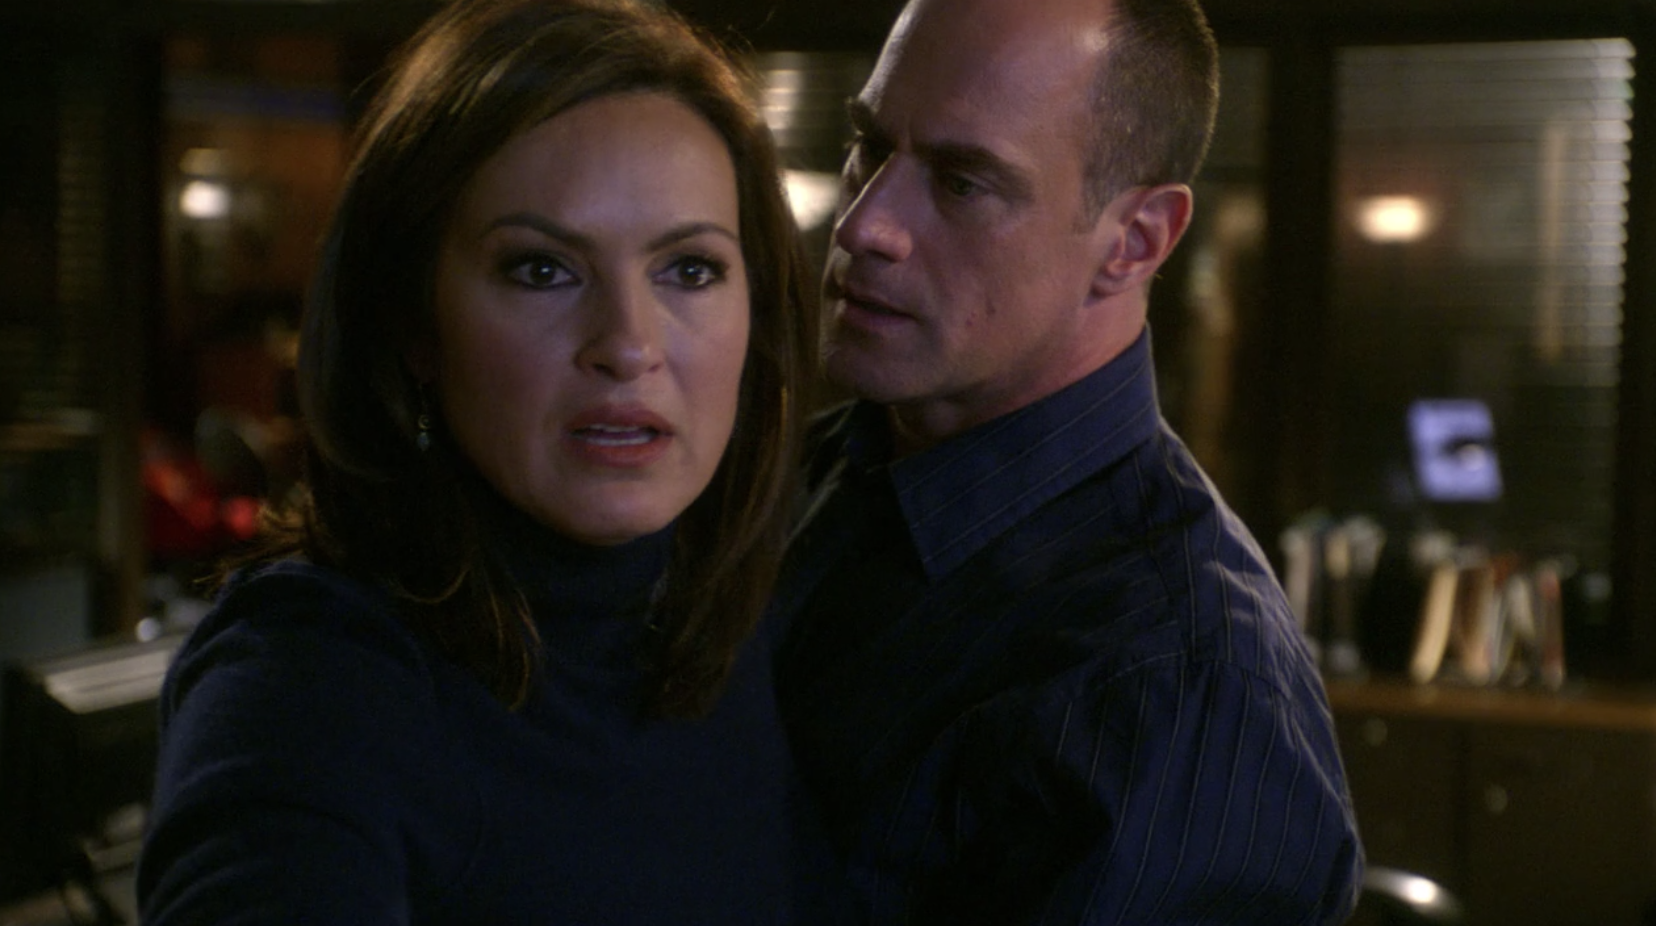 Stabler bracing Benson as they remove Calvin from her custody